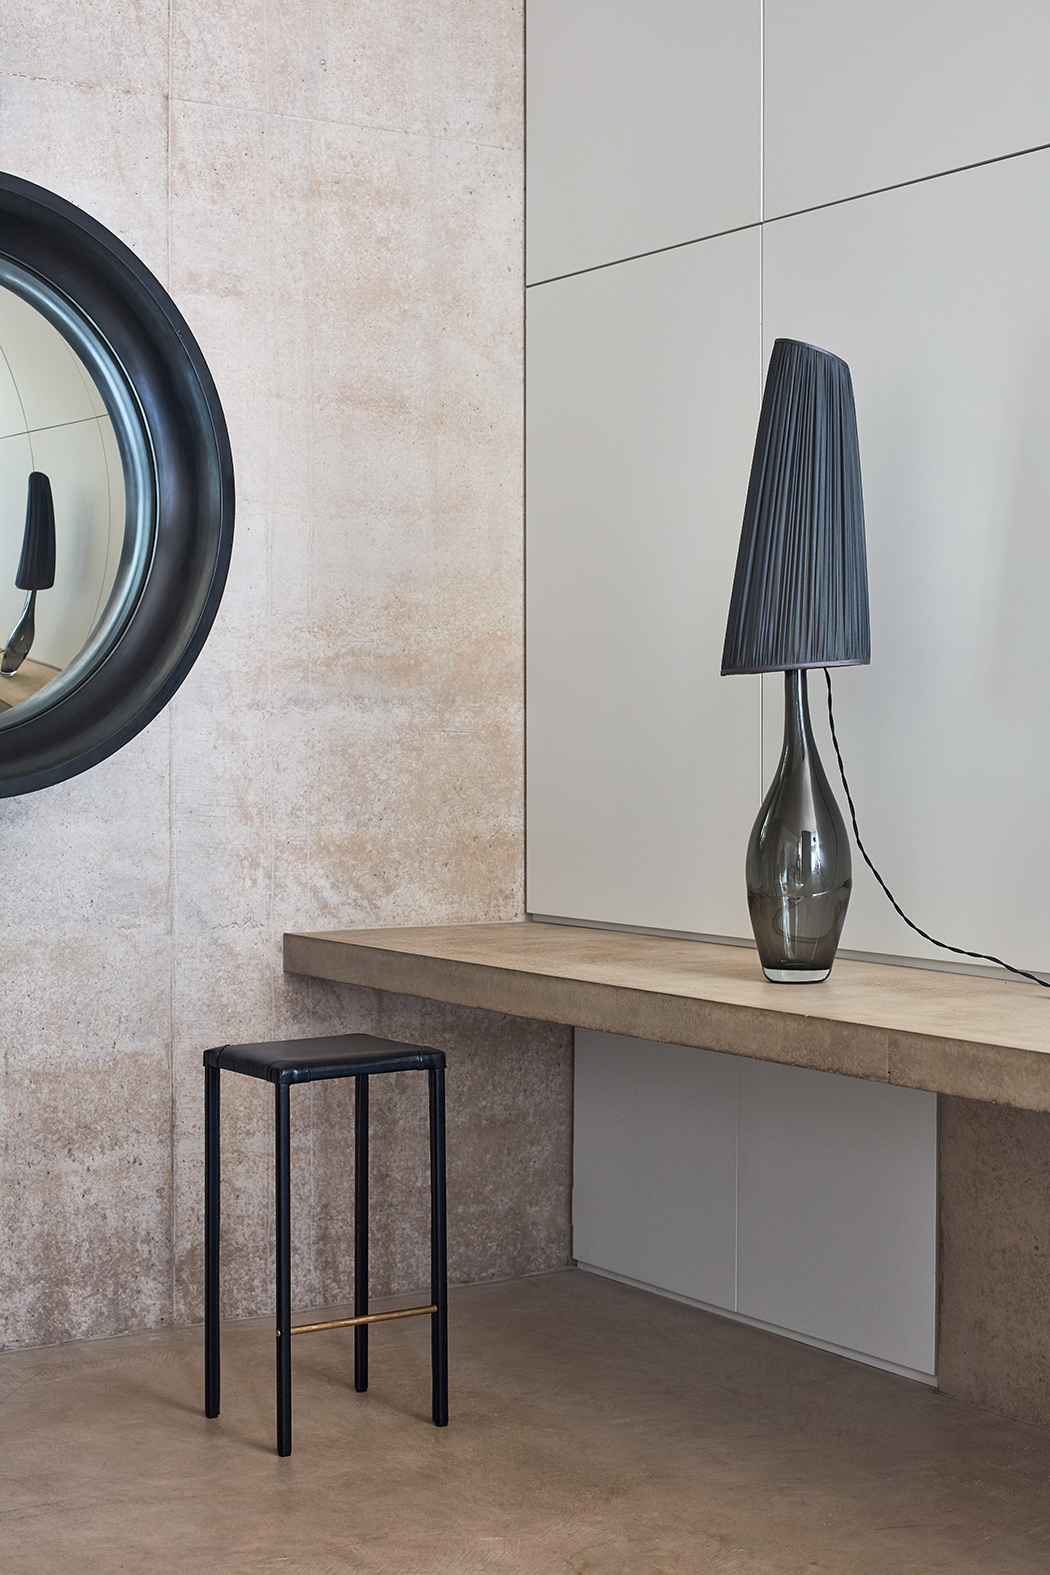 Lupin Table Lamp by Ochre